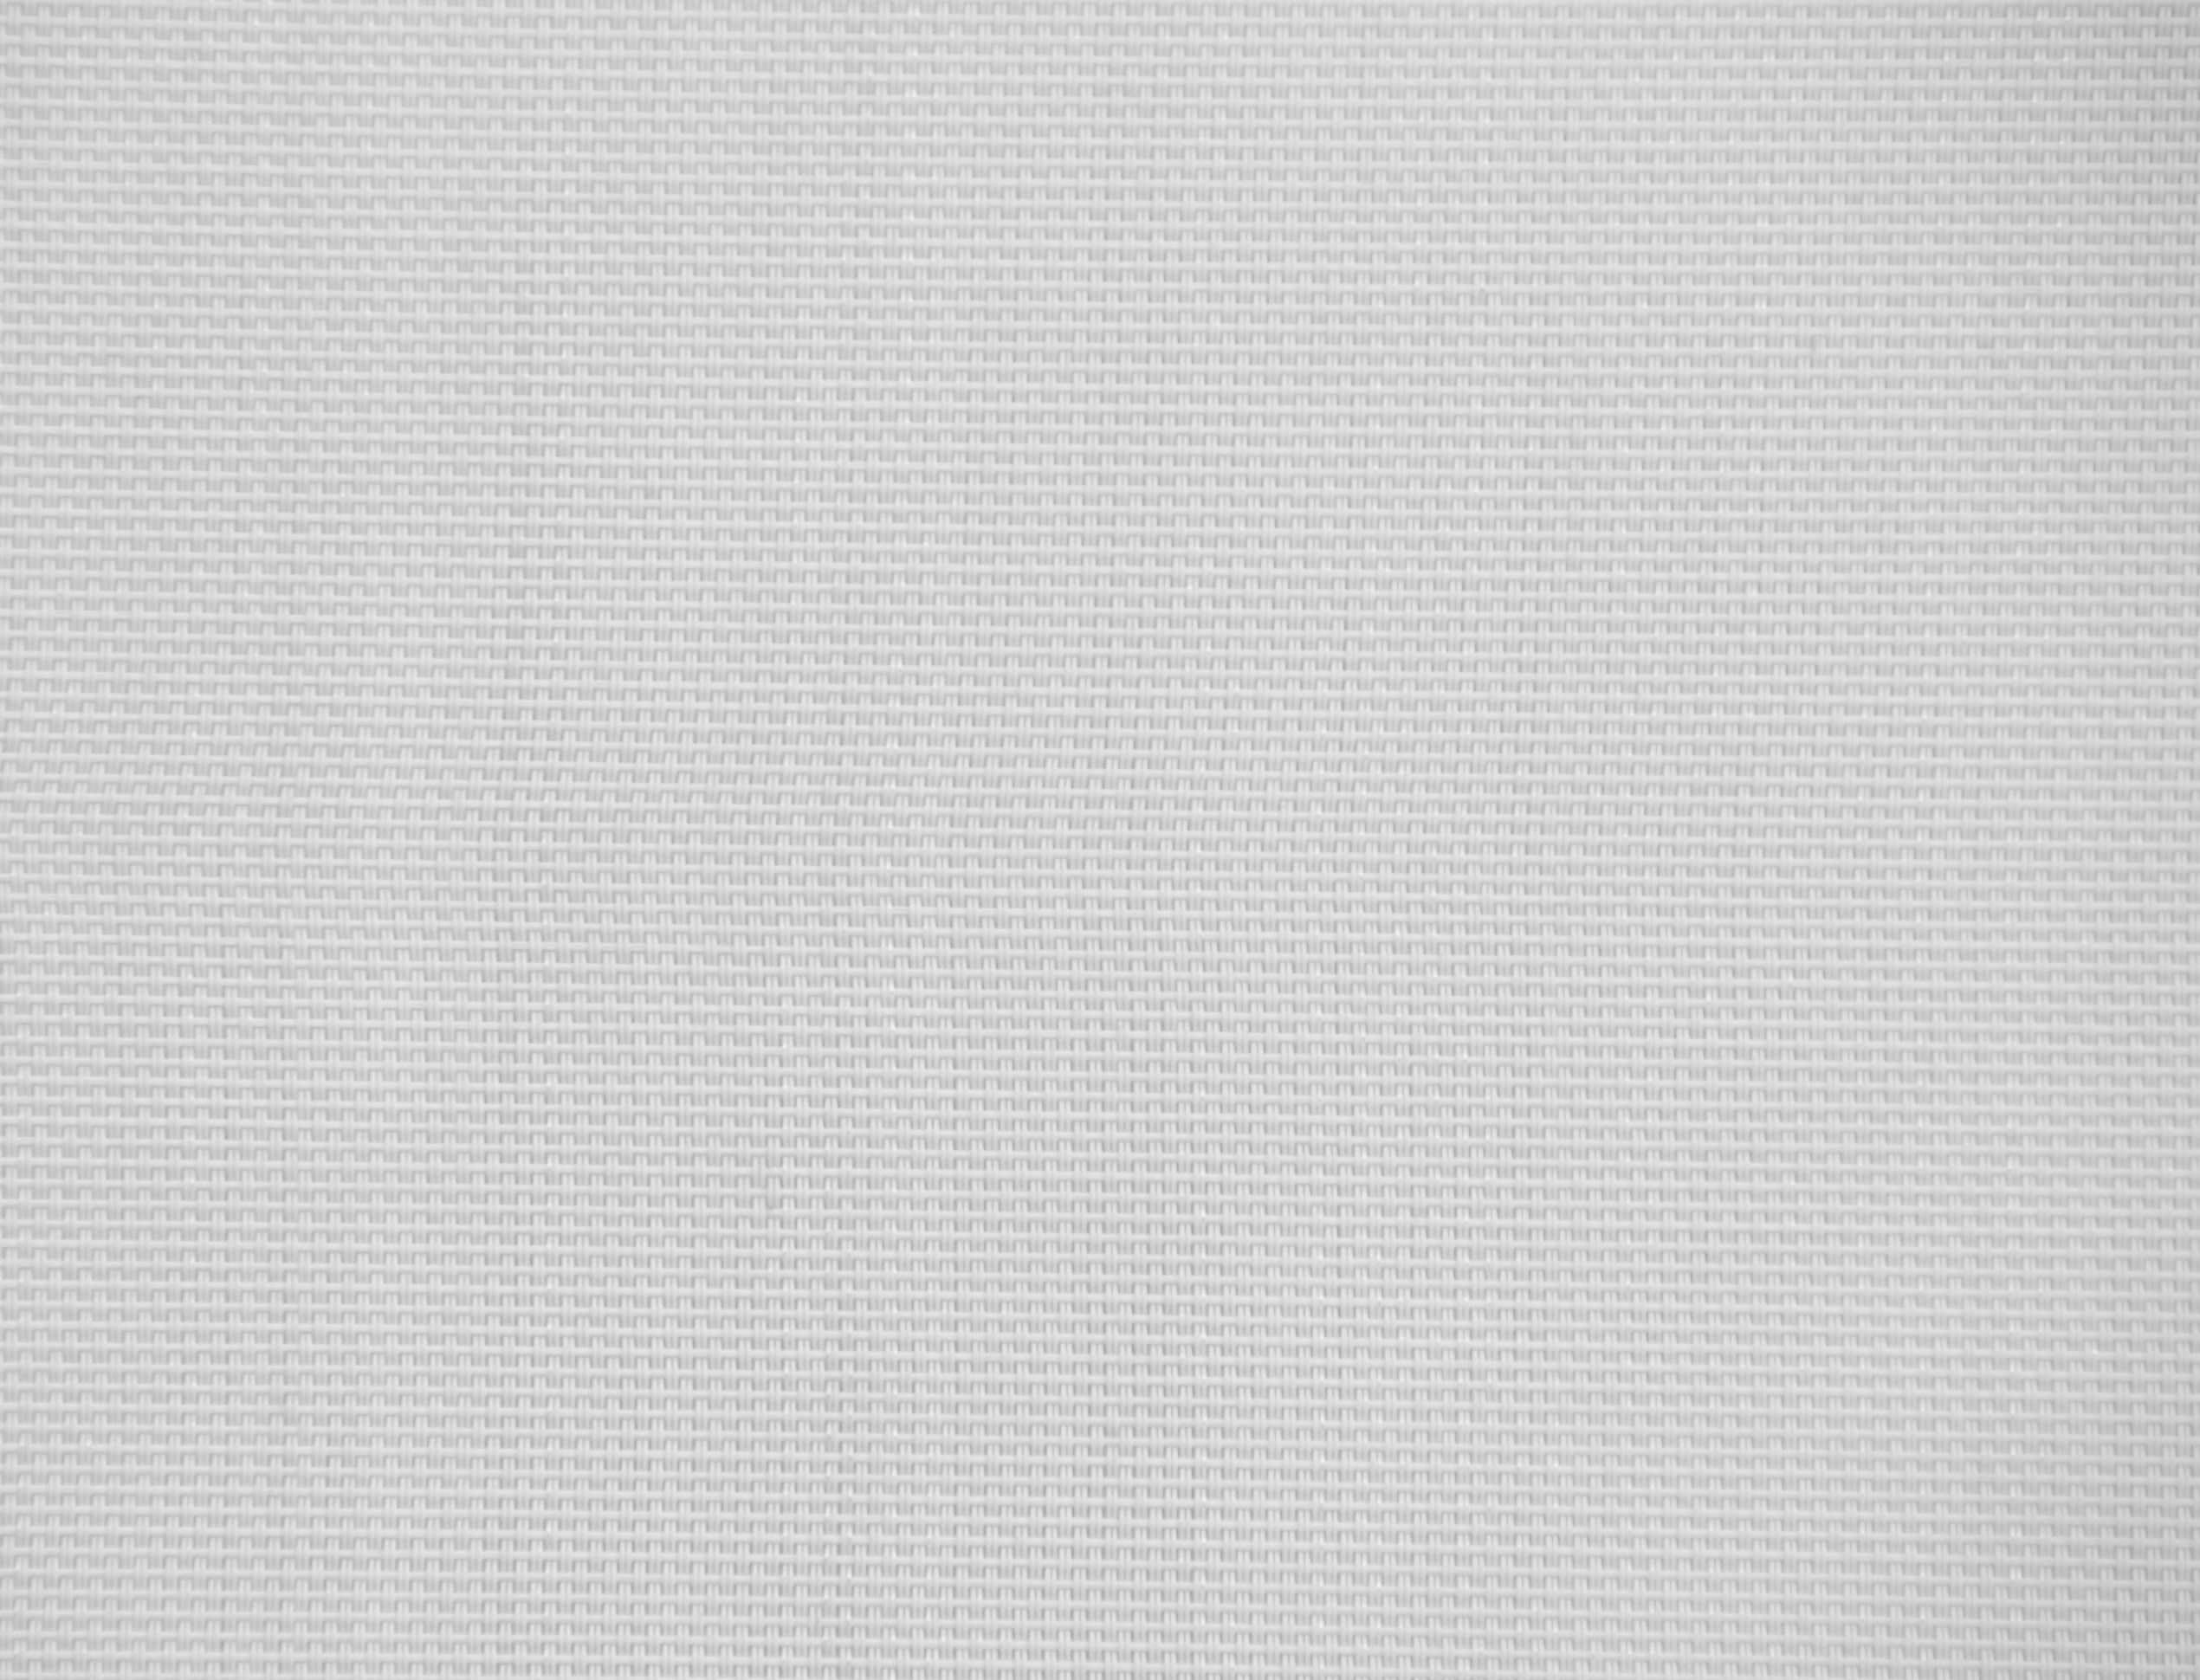 Canvas Colour Textures Amp Materials Textured Wallpaper